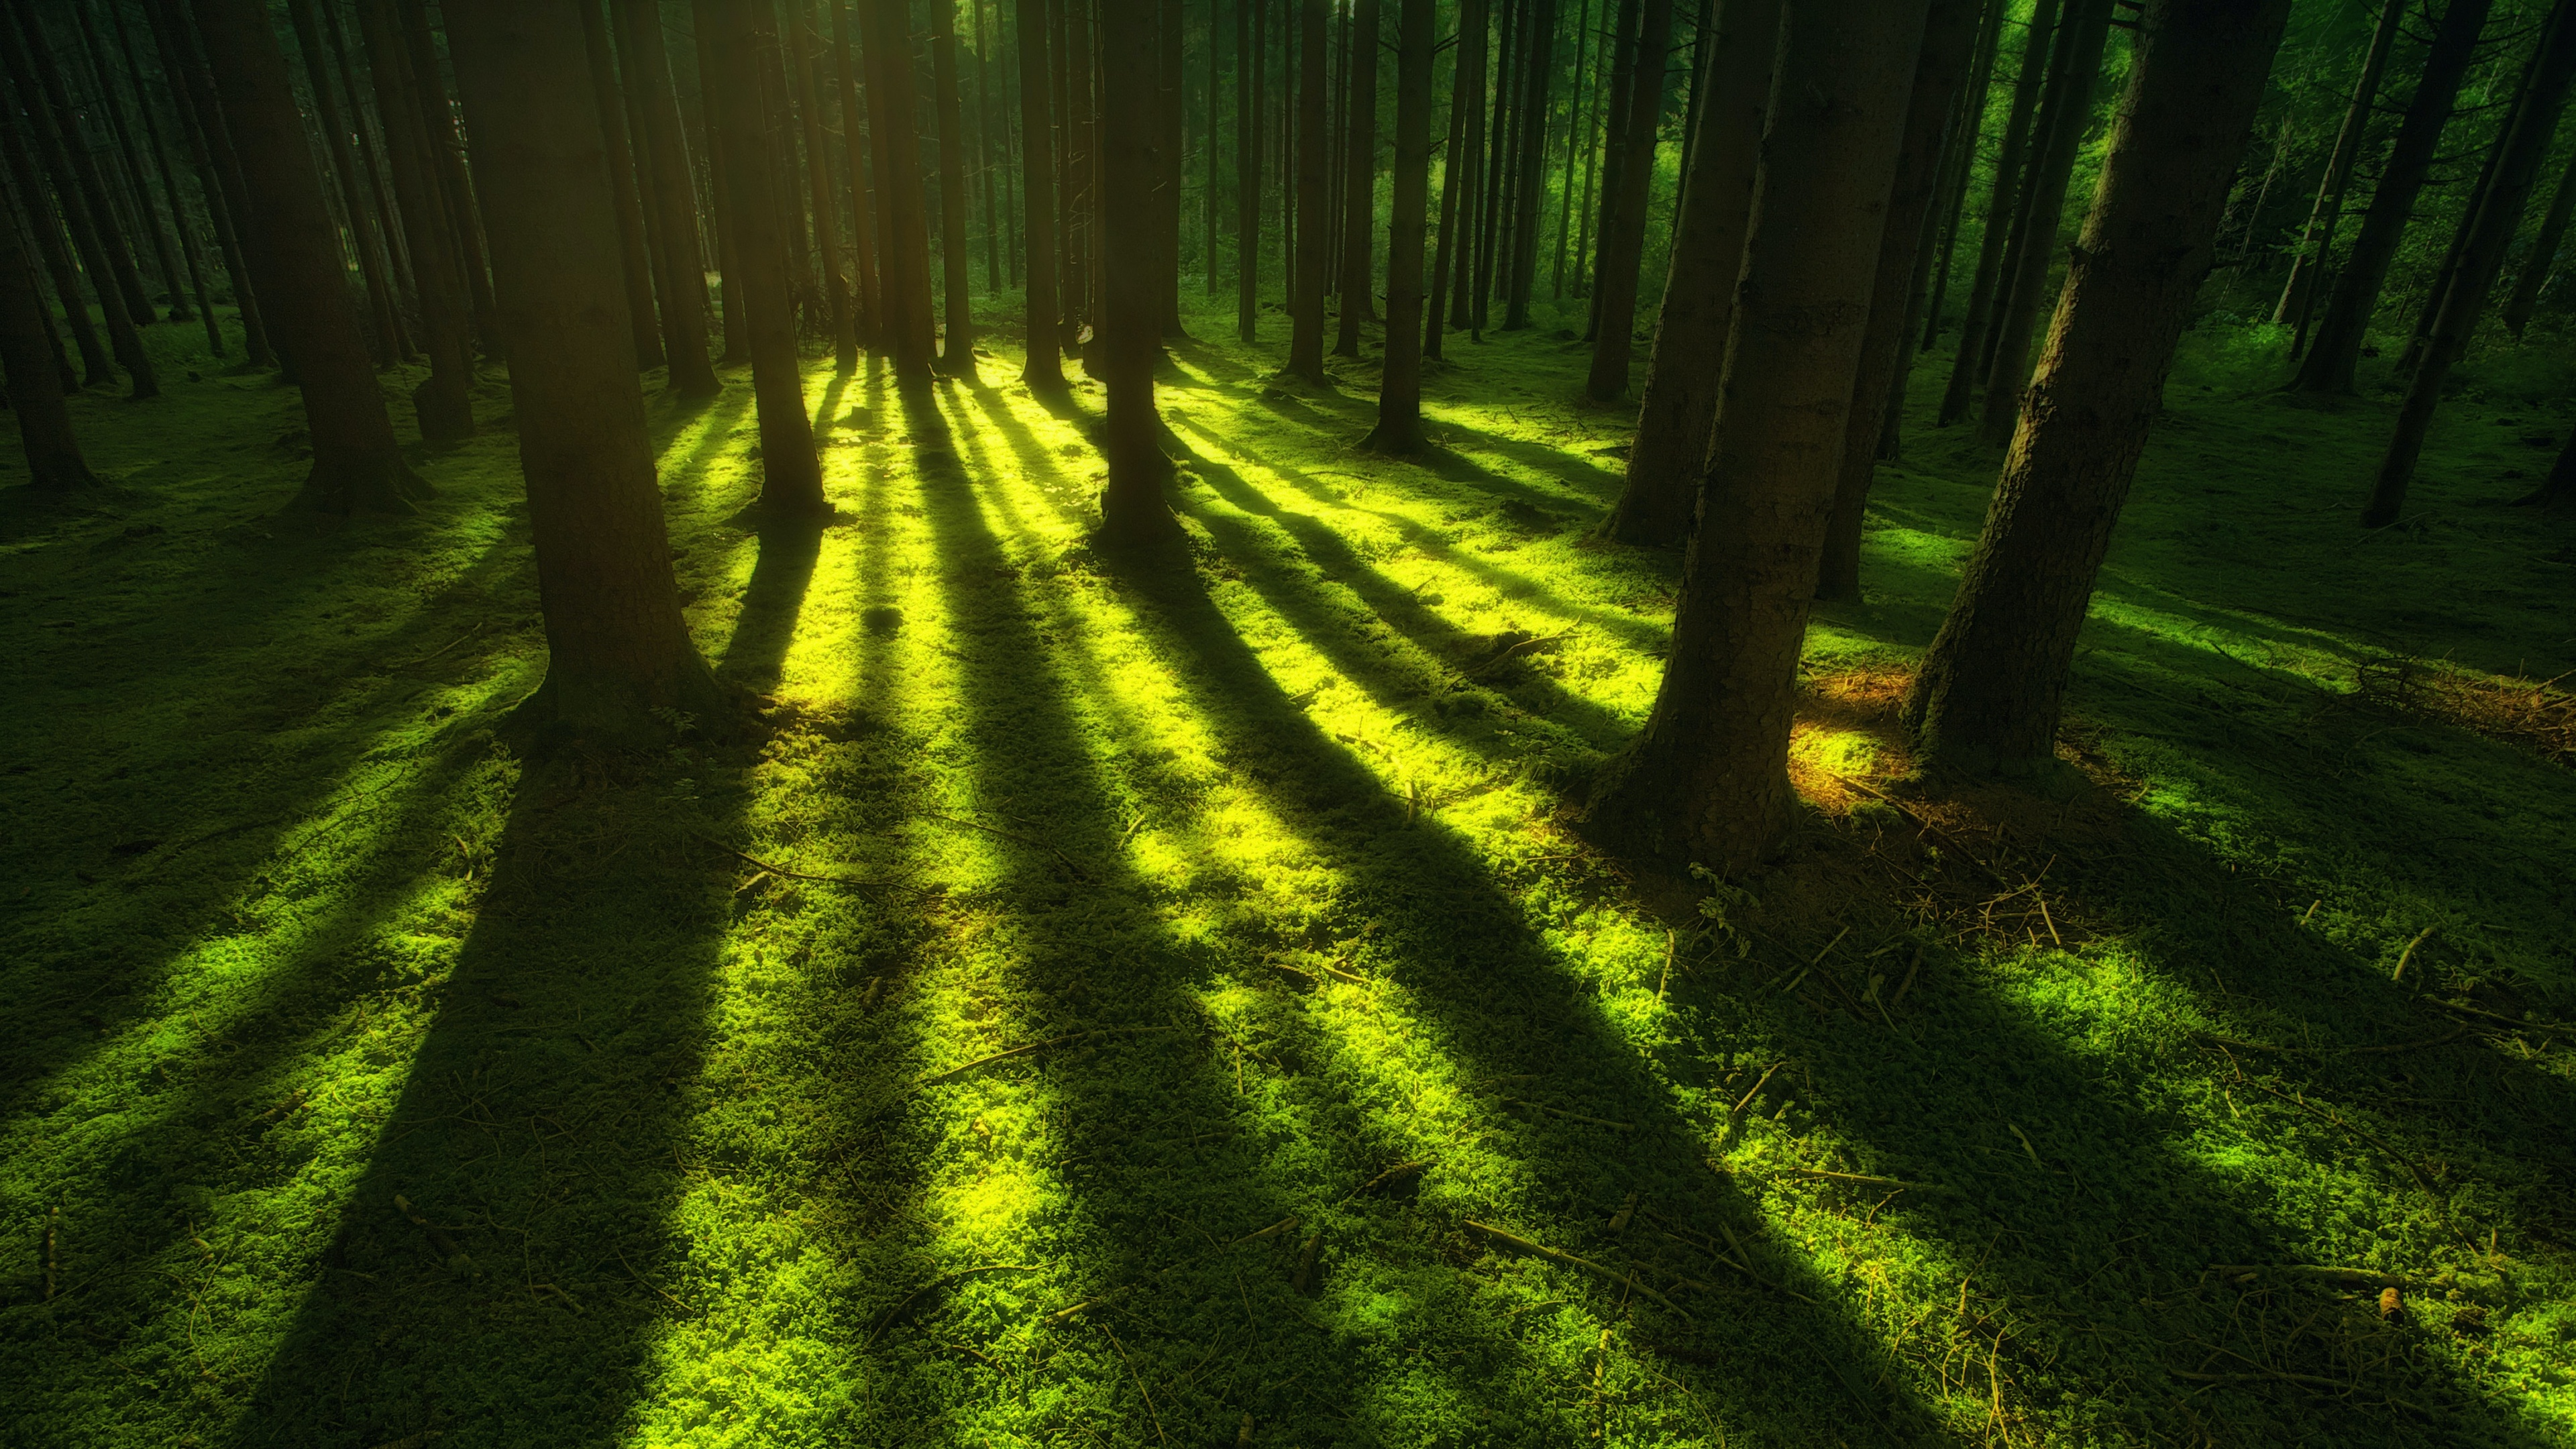 Forest 4k Wallpaper Trees Shadow Daylight Green Nature 535